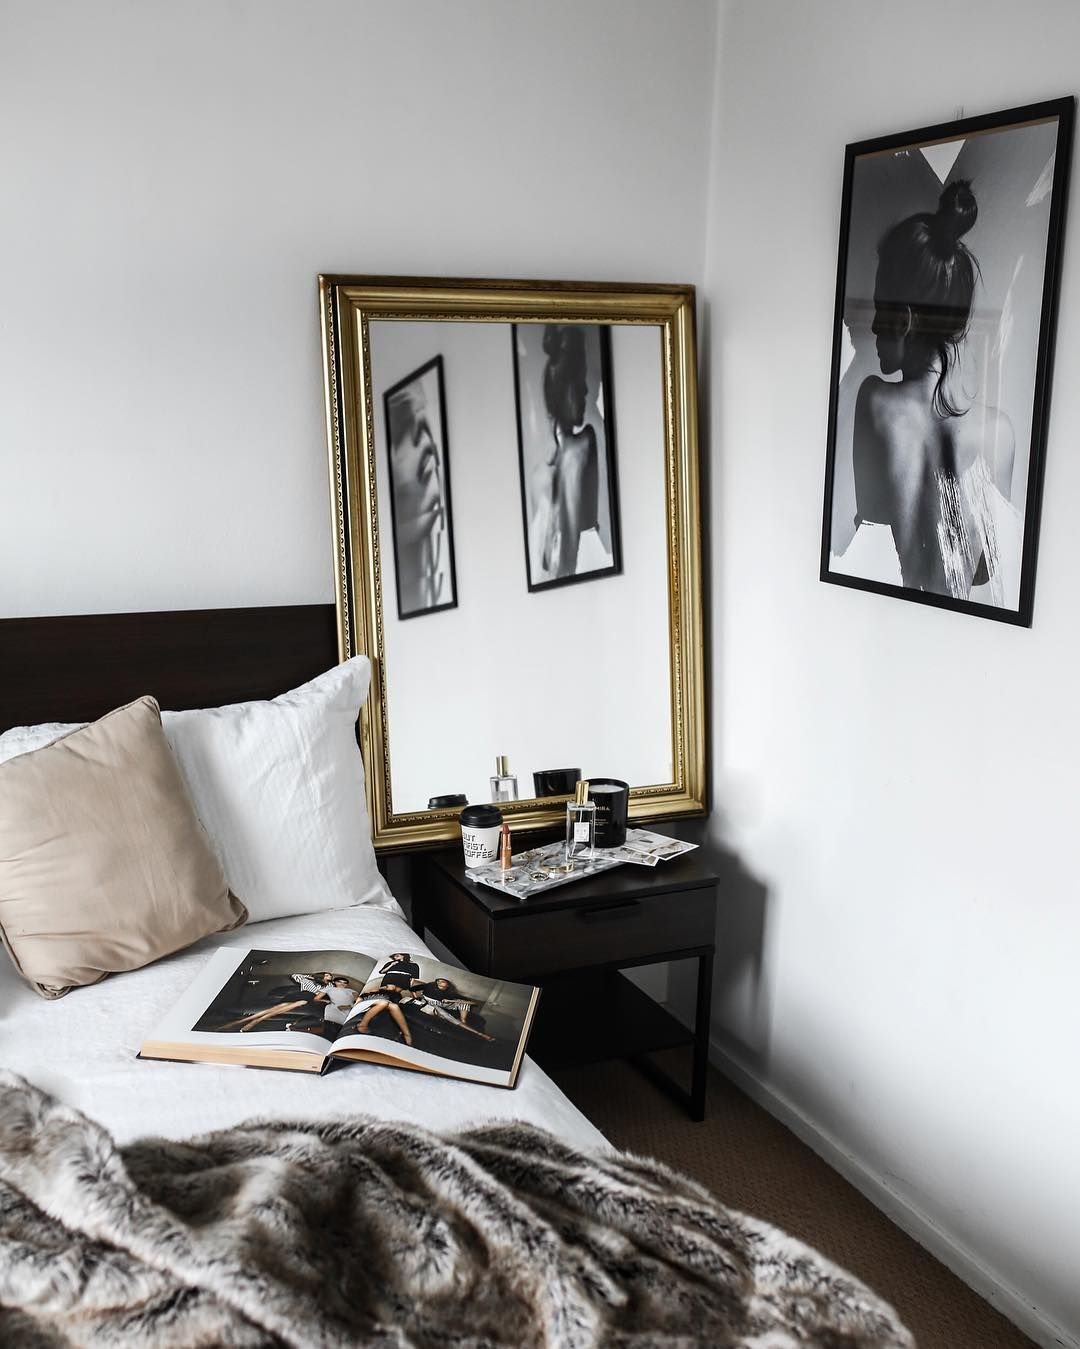 Pin By Perla Reyes On Home Decor In 2019